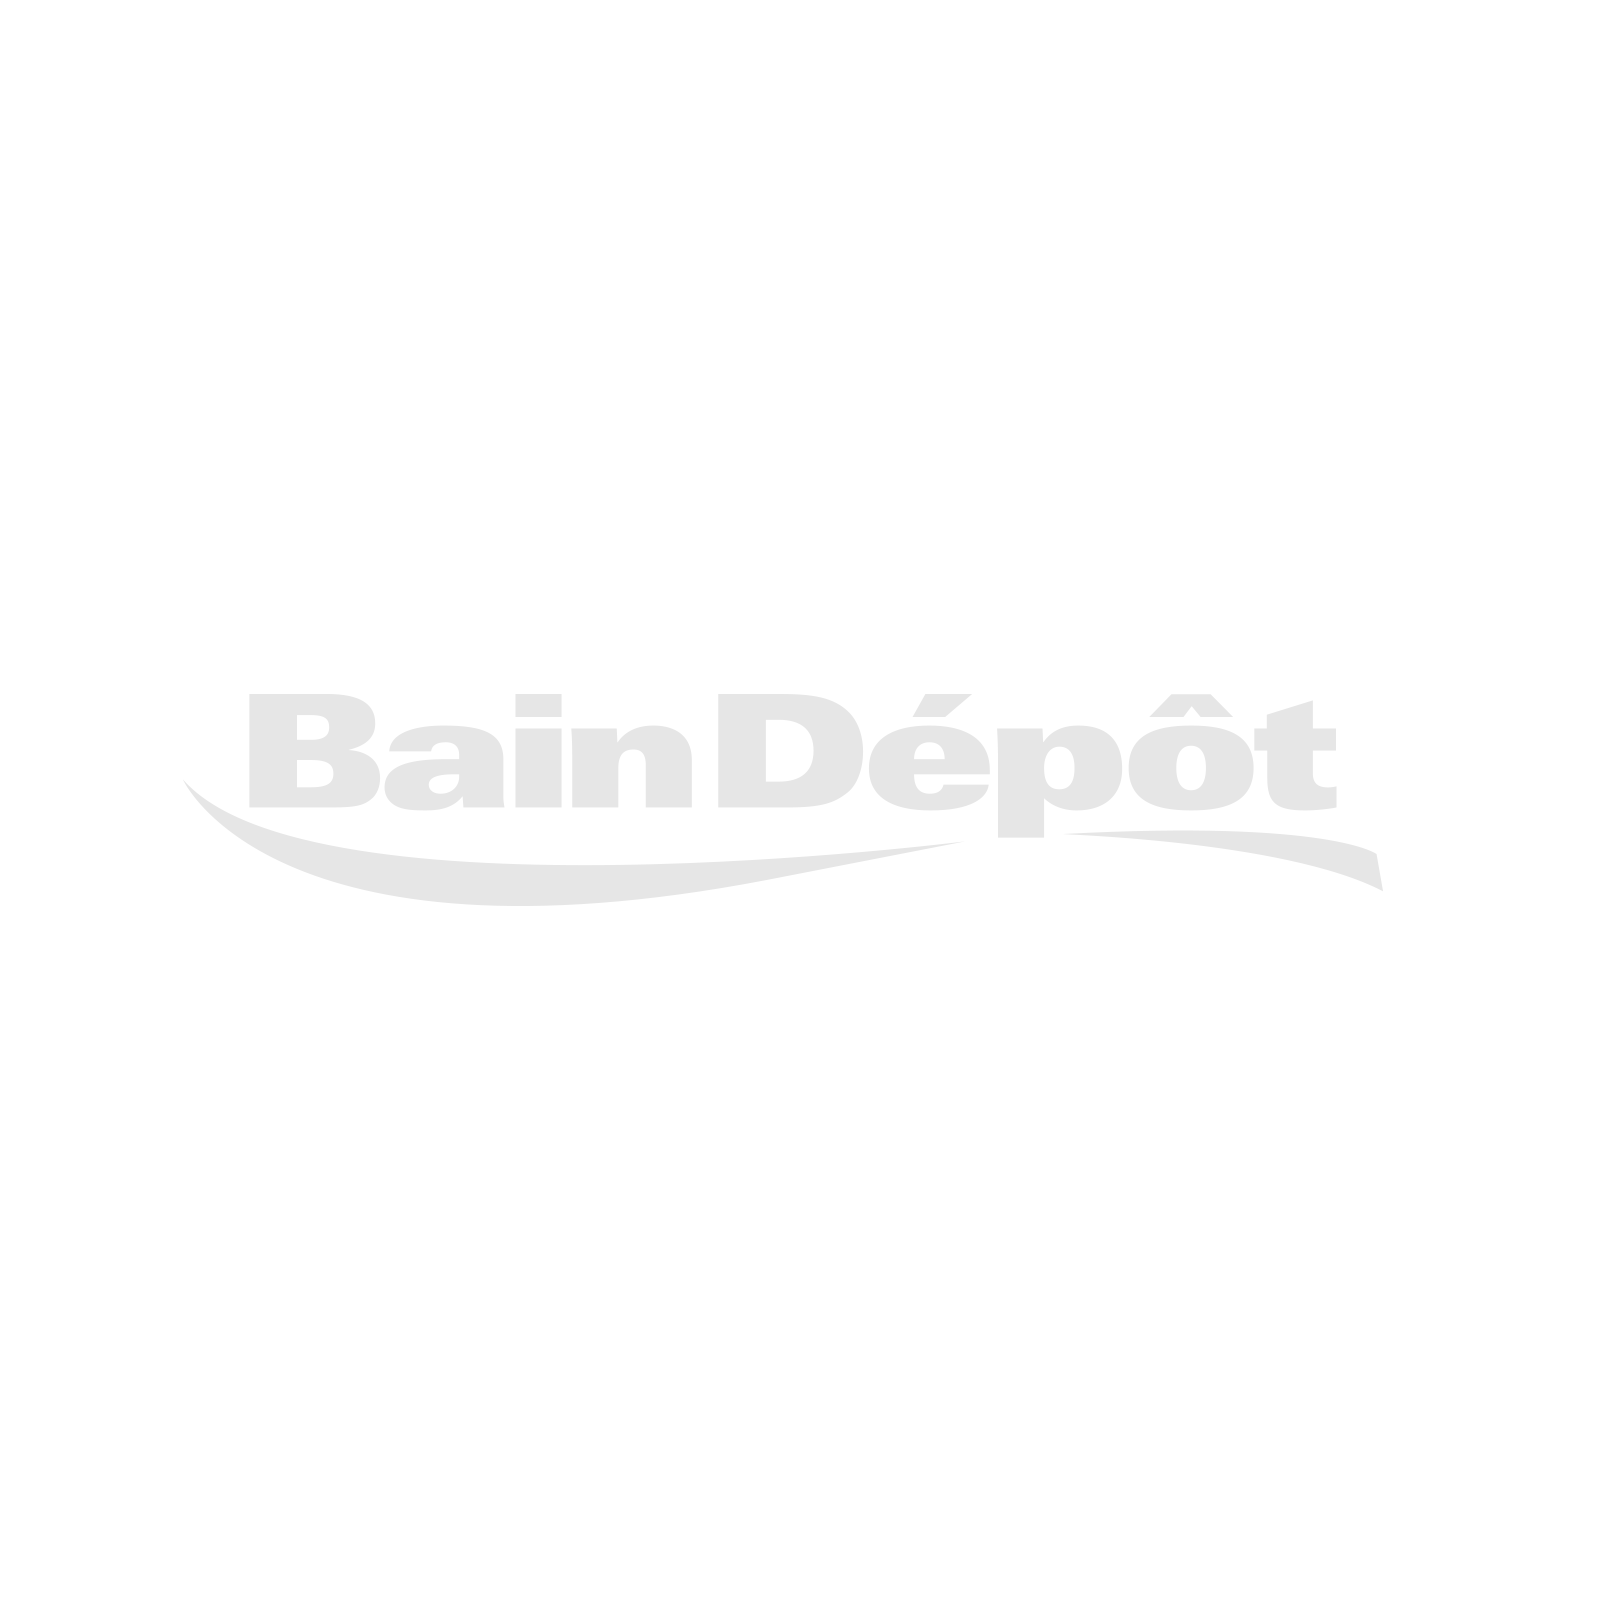 "24"" x 31.5"" Vertical or horizontal mirror with matte white frame"